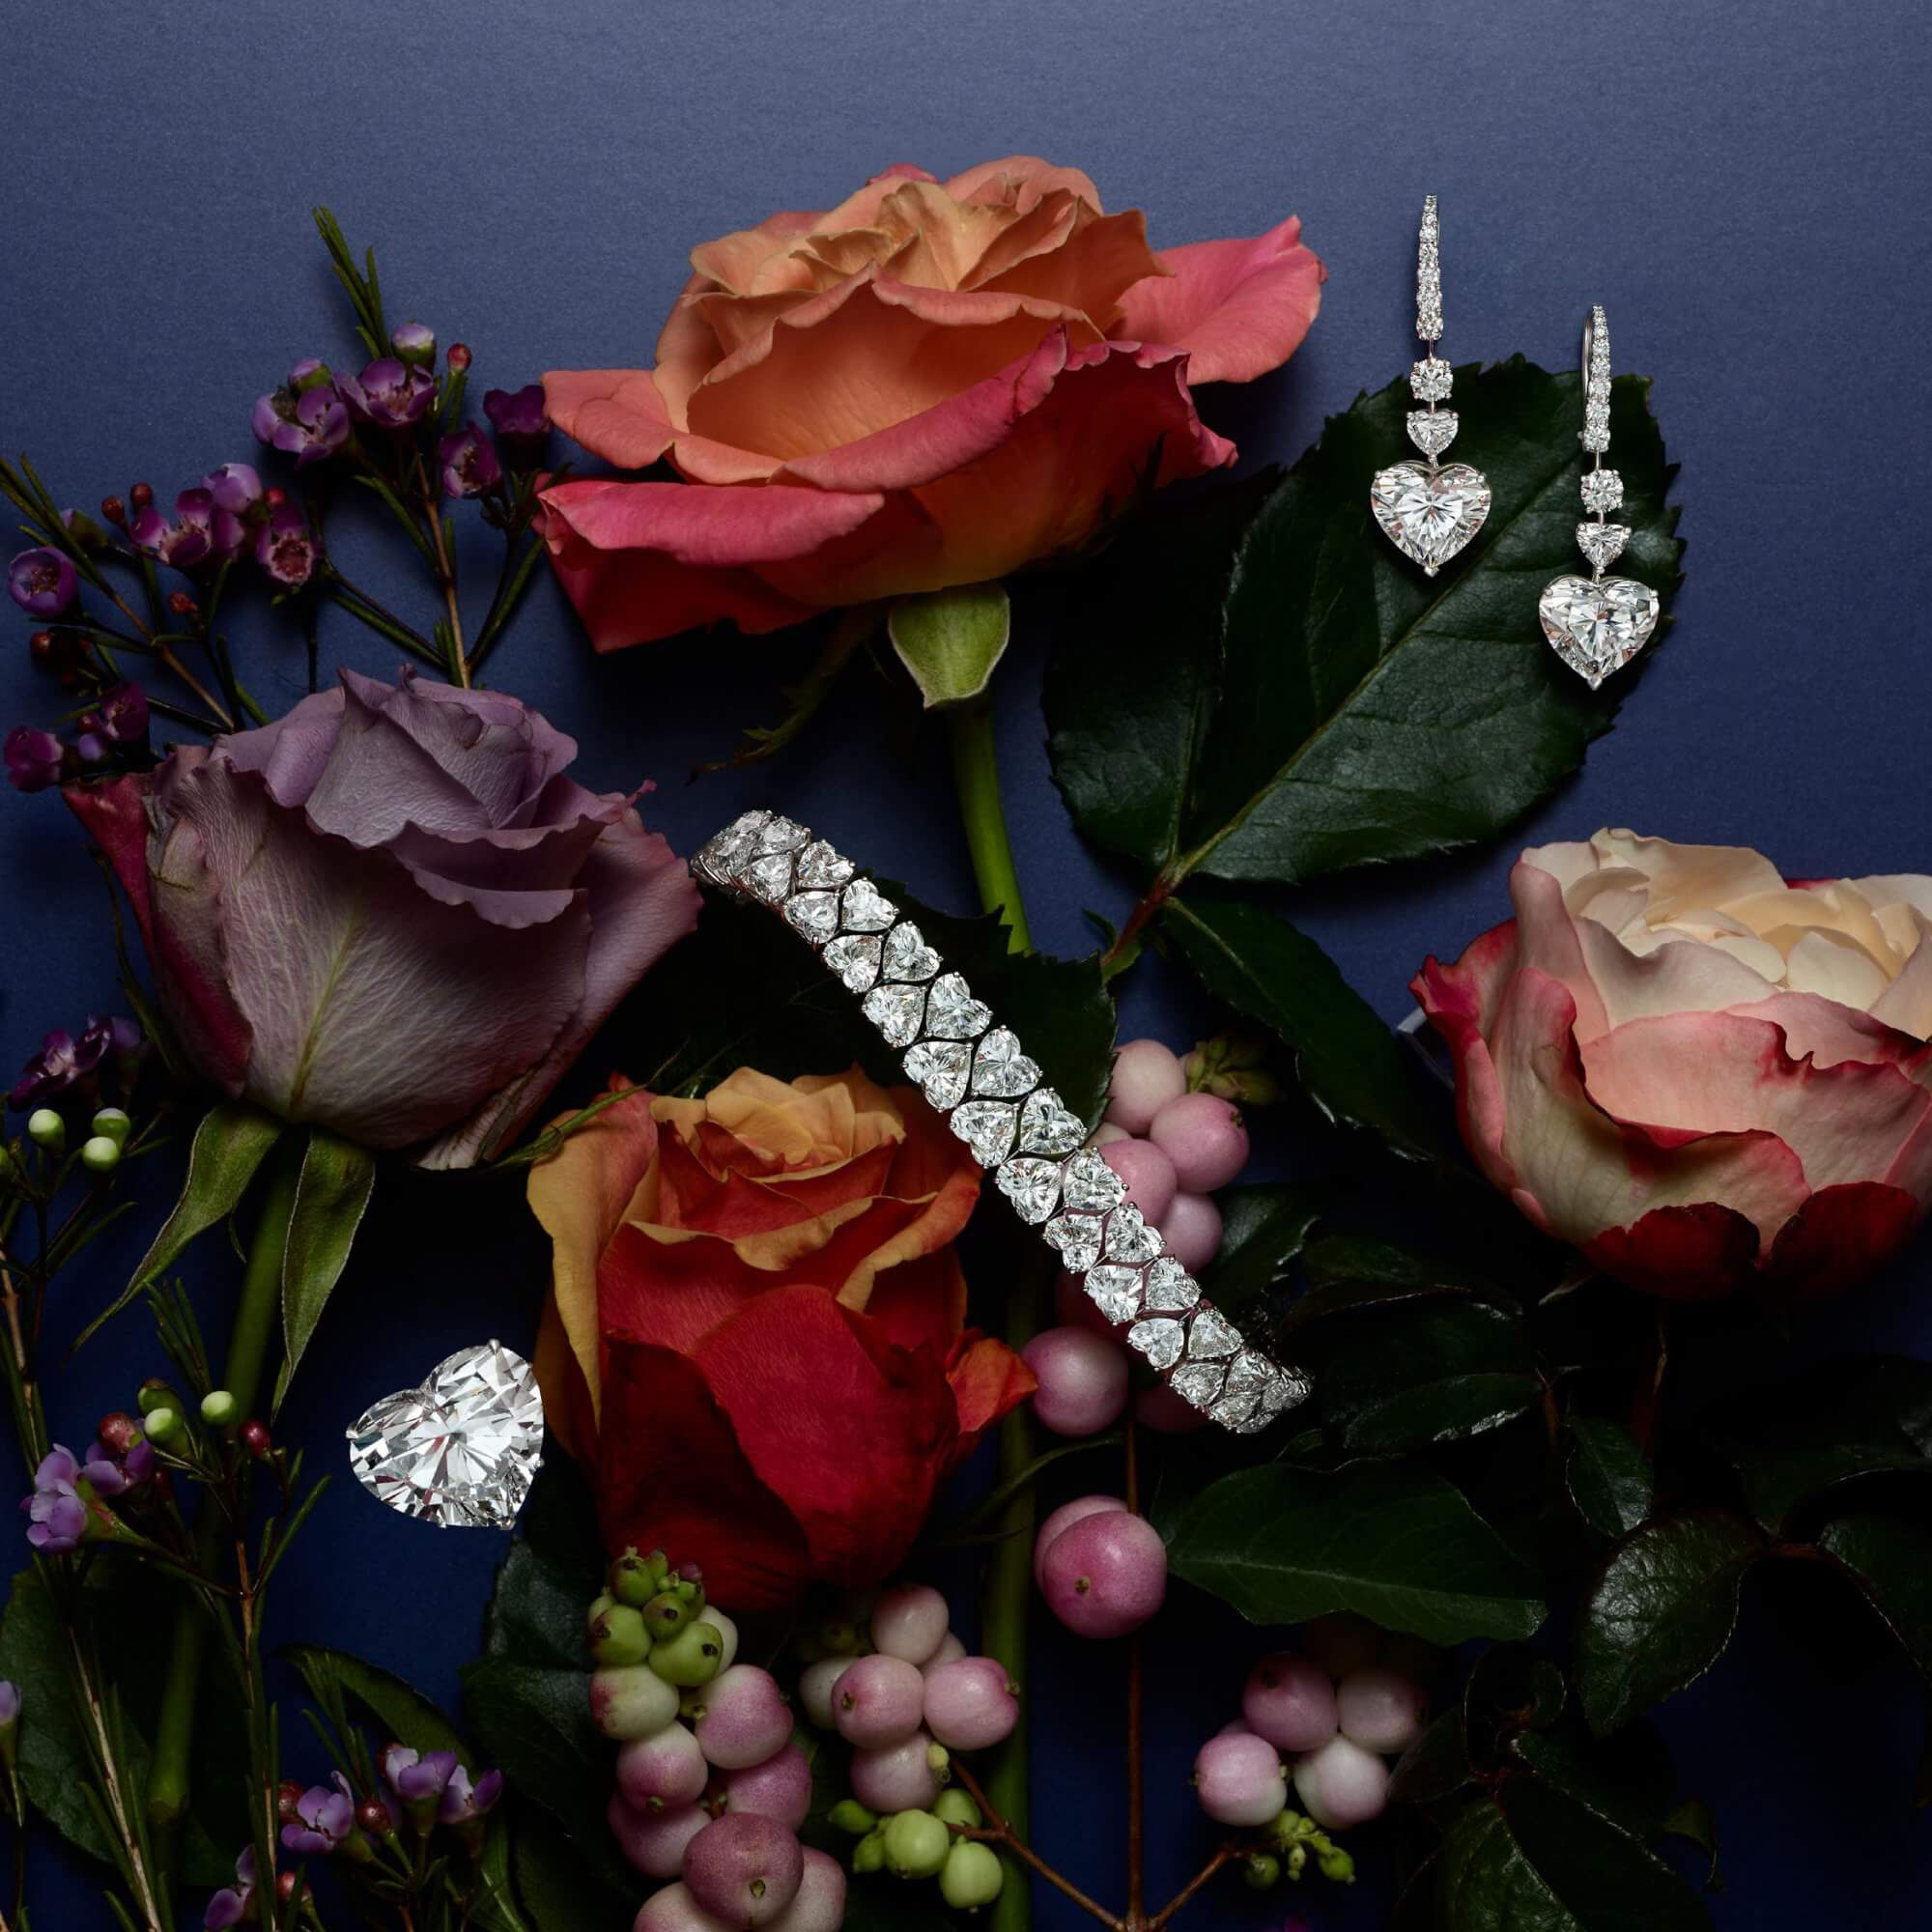 Graff diamond jewellery with flowers decorations